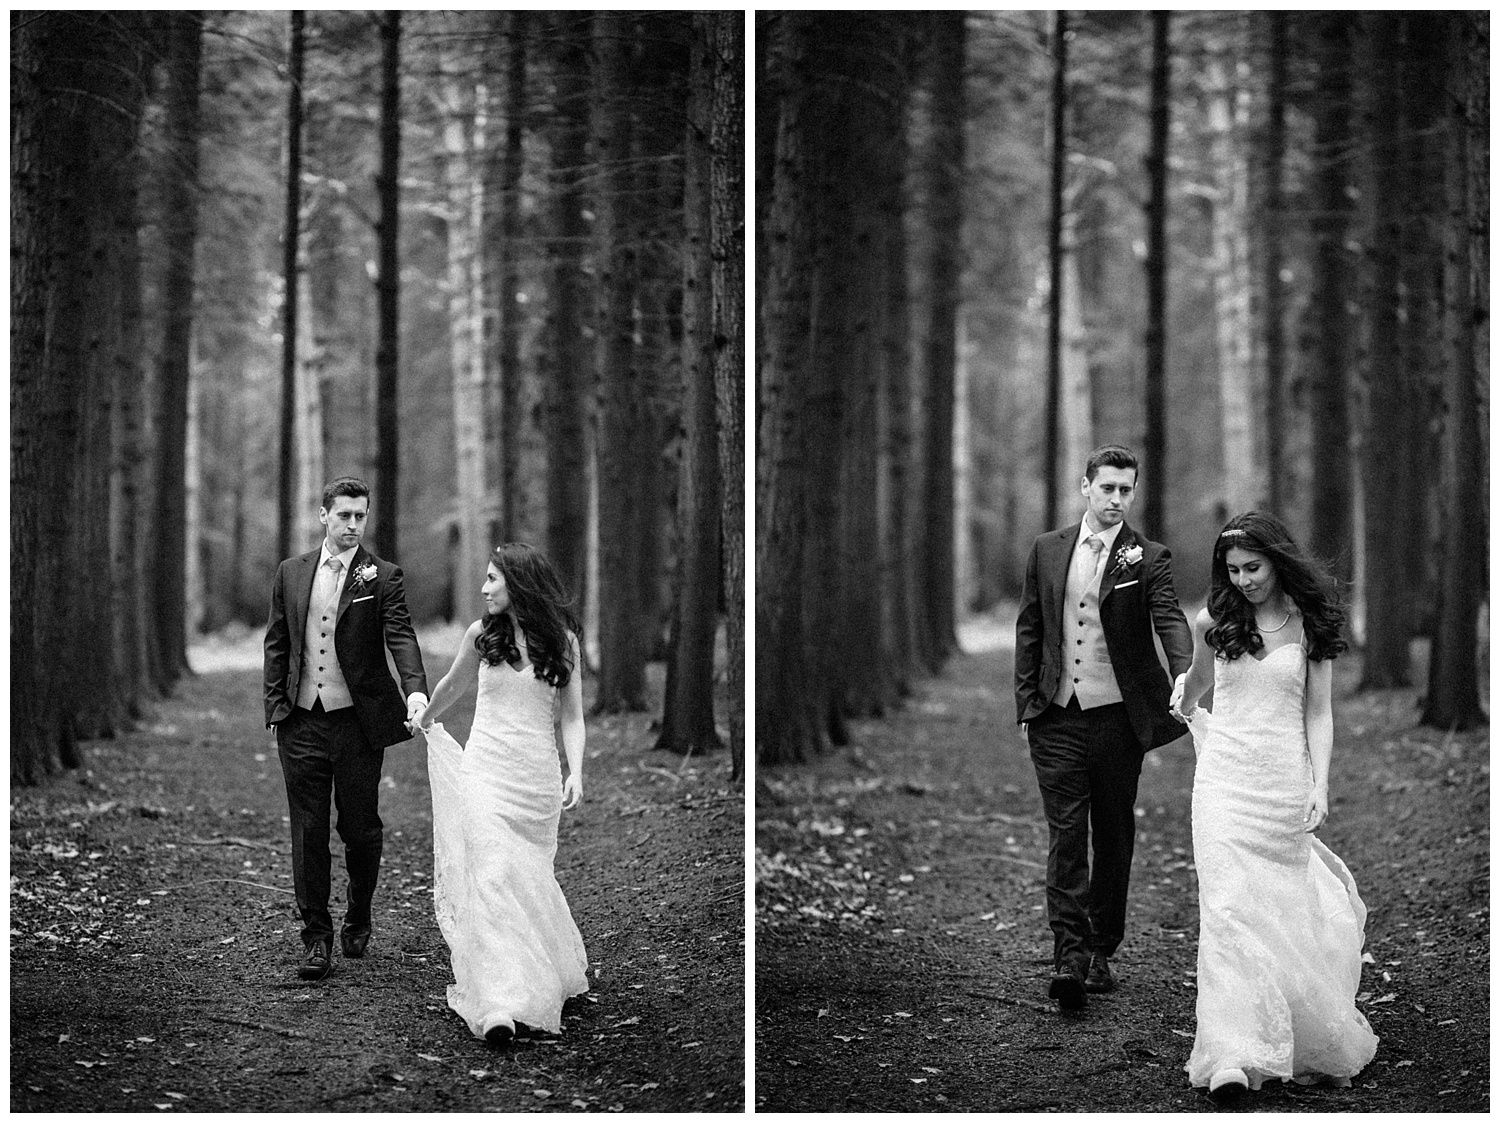 Wedding at Foxhills, Surrey Wedding Photographer - bride and groom walking in forest